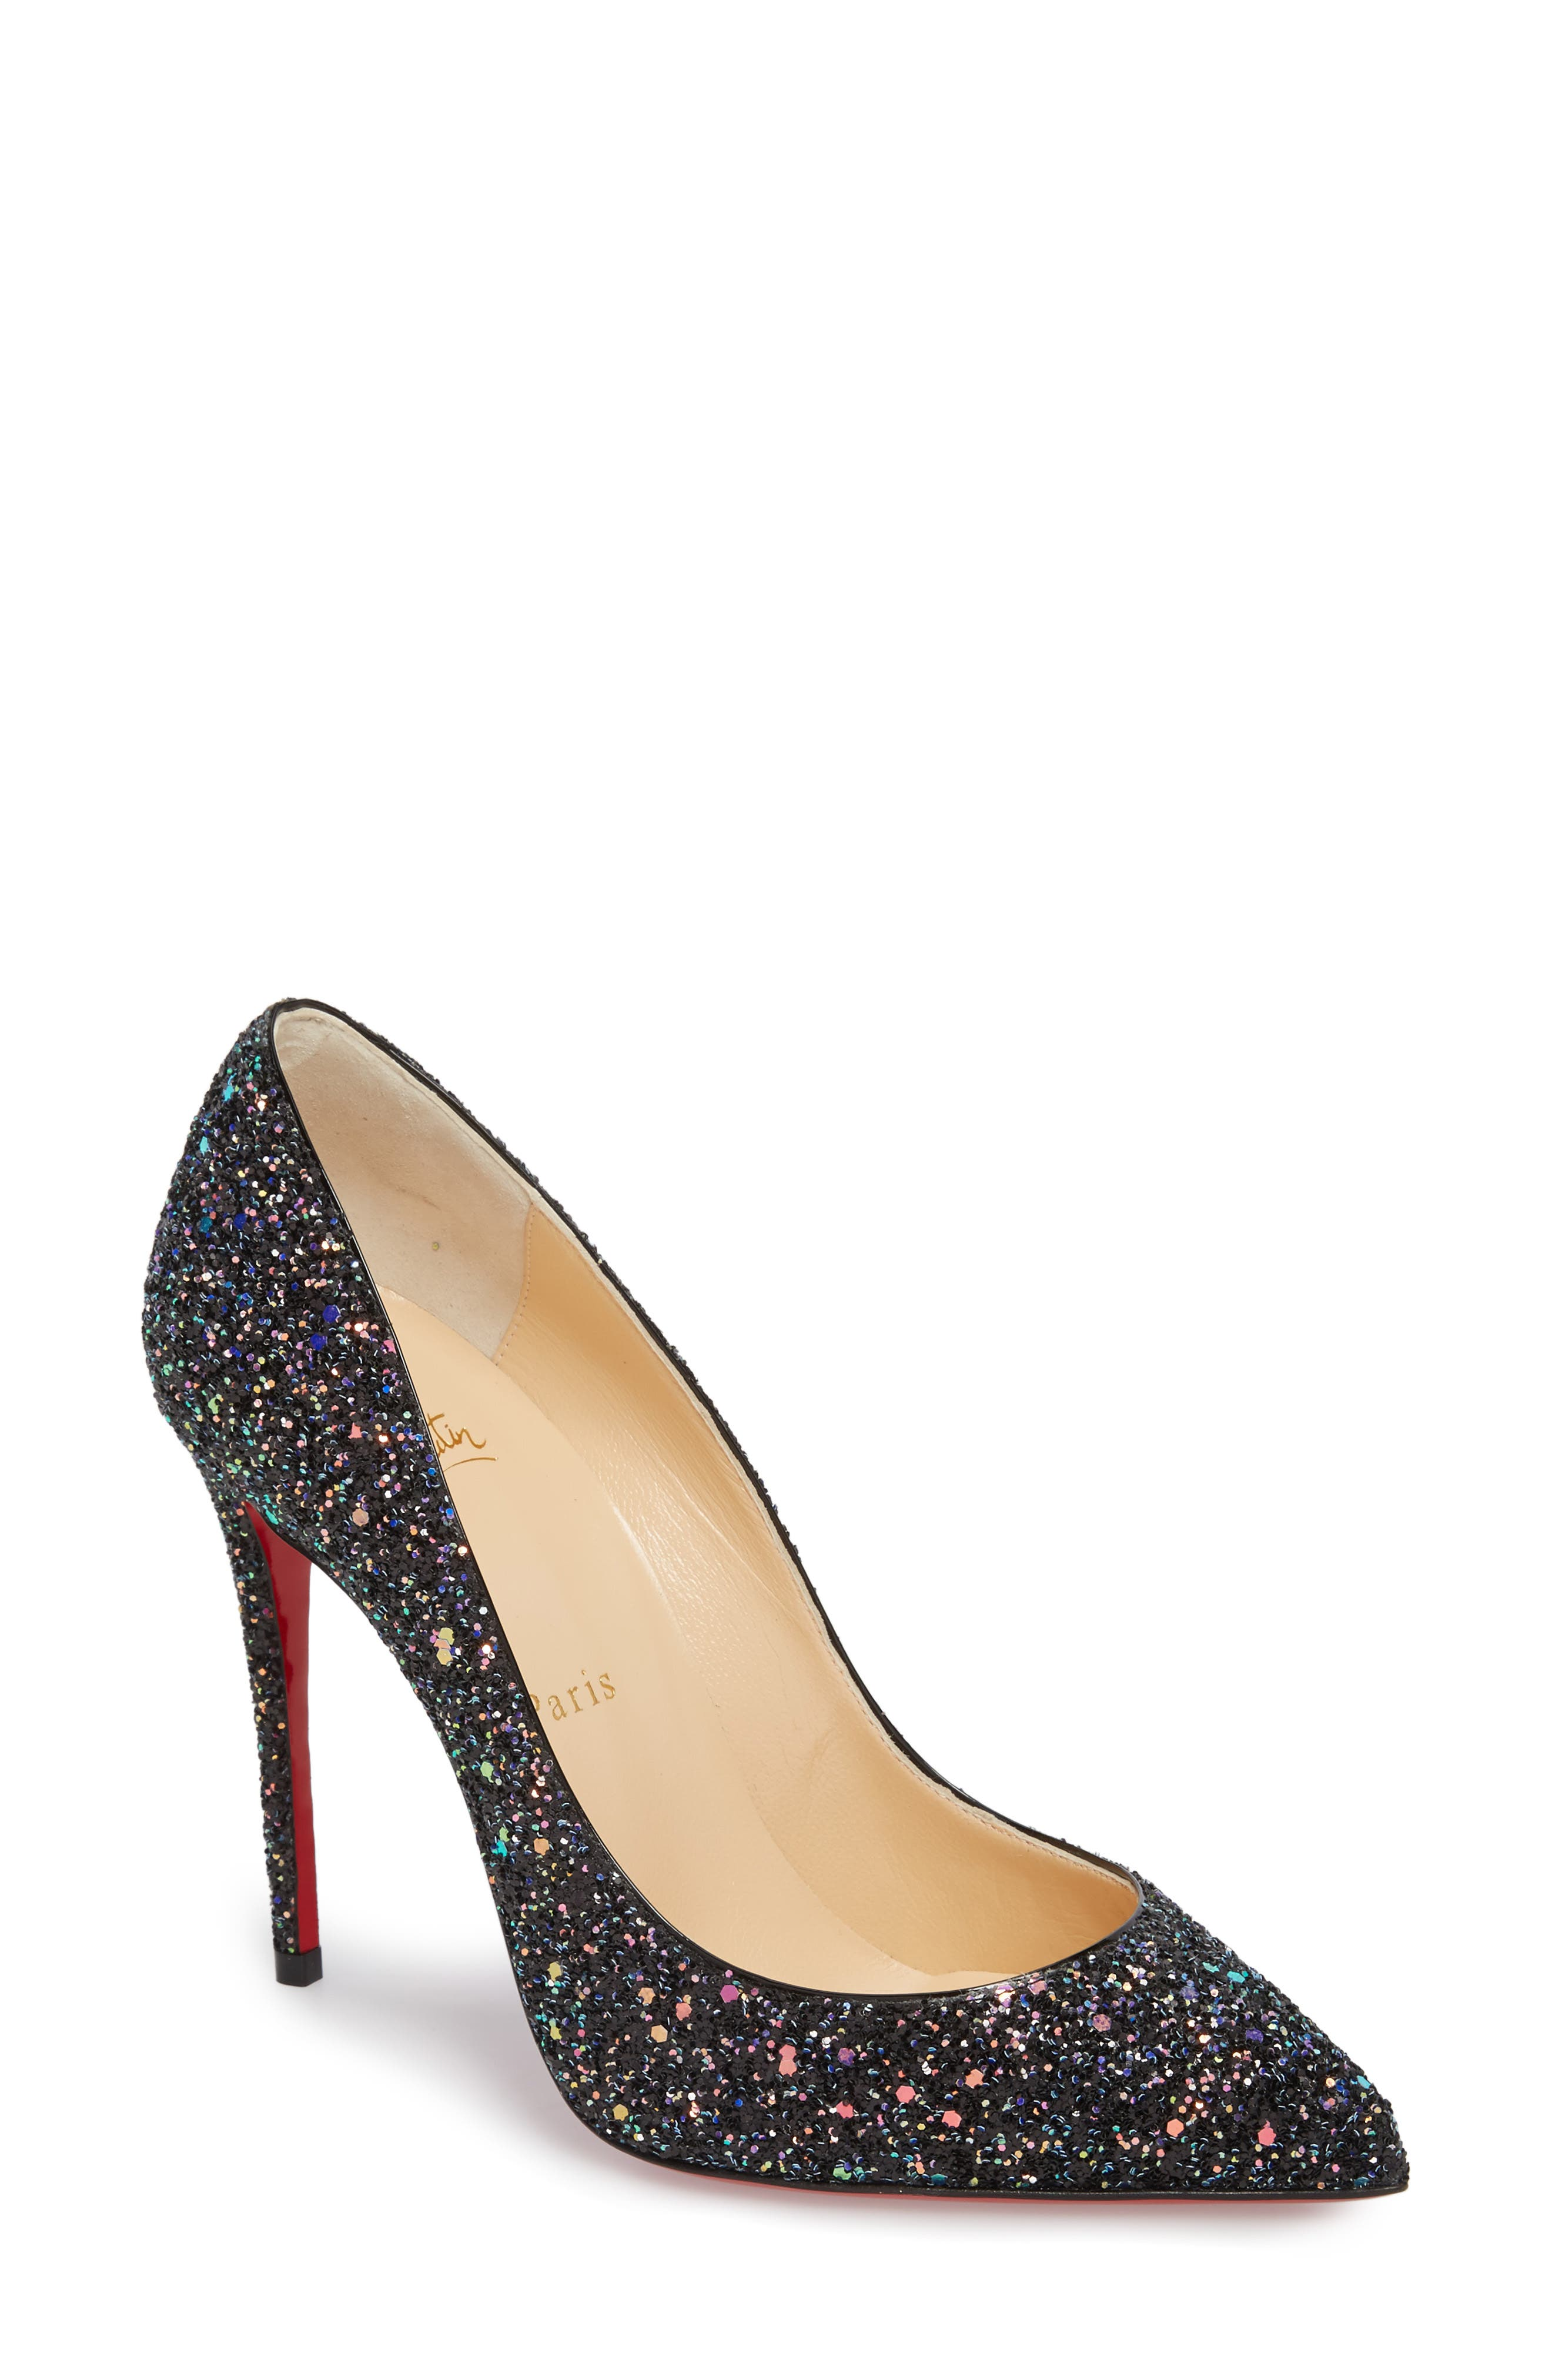 Pigalle Follies Glitter Pointy Toe Pump,                             Main thumbnail 1, color,                             001